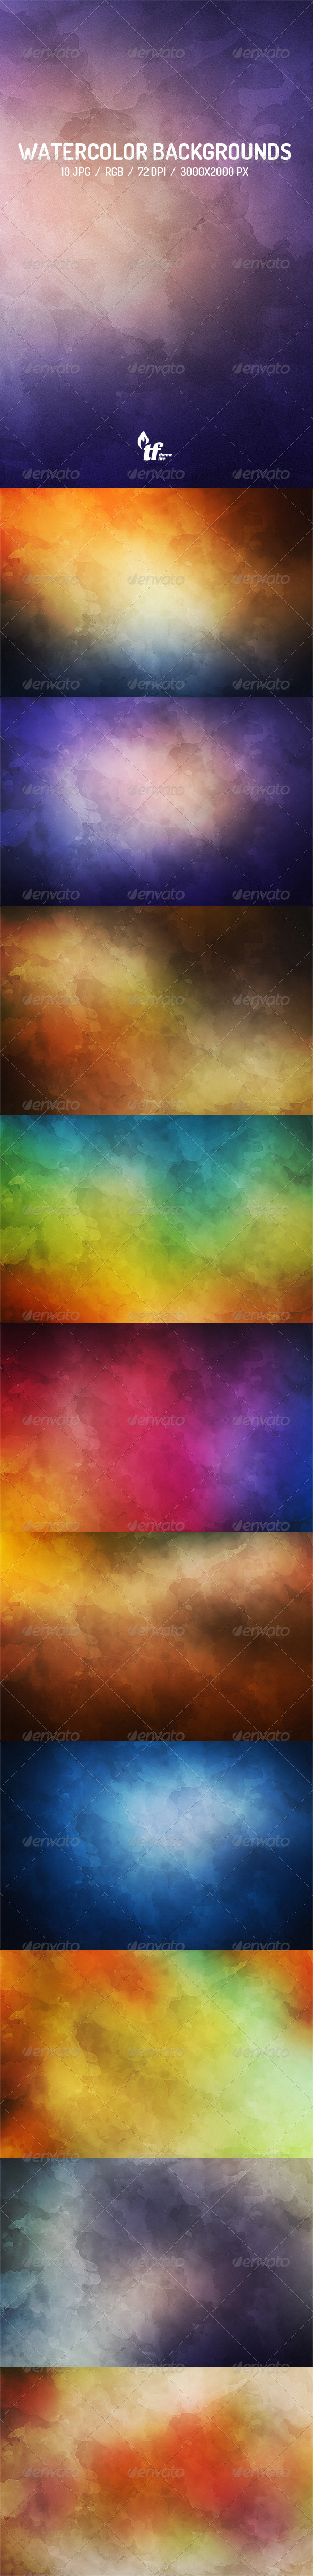 GraphicRiver 10 Watercolor Backgrounds Vol.2 7509748